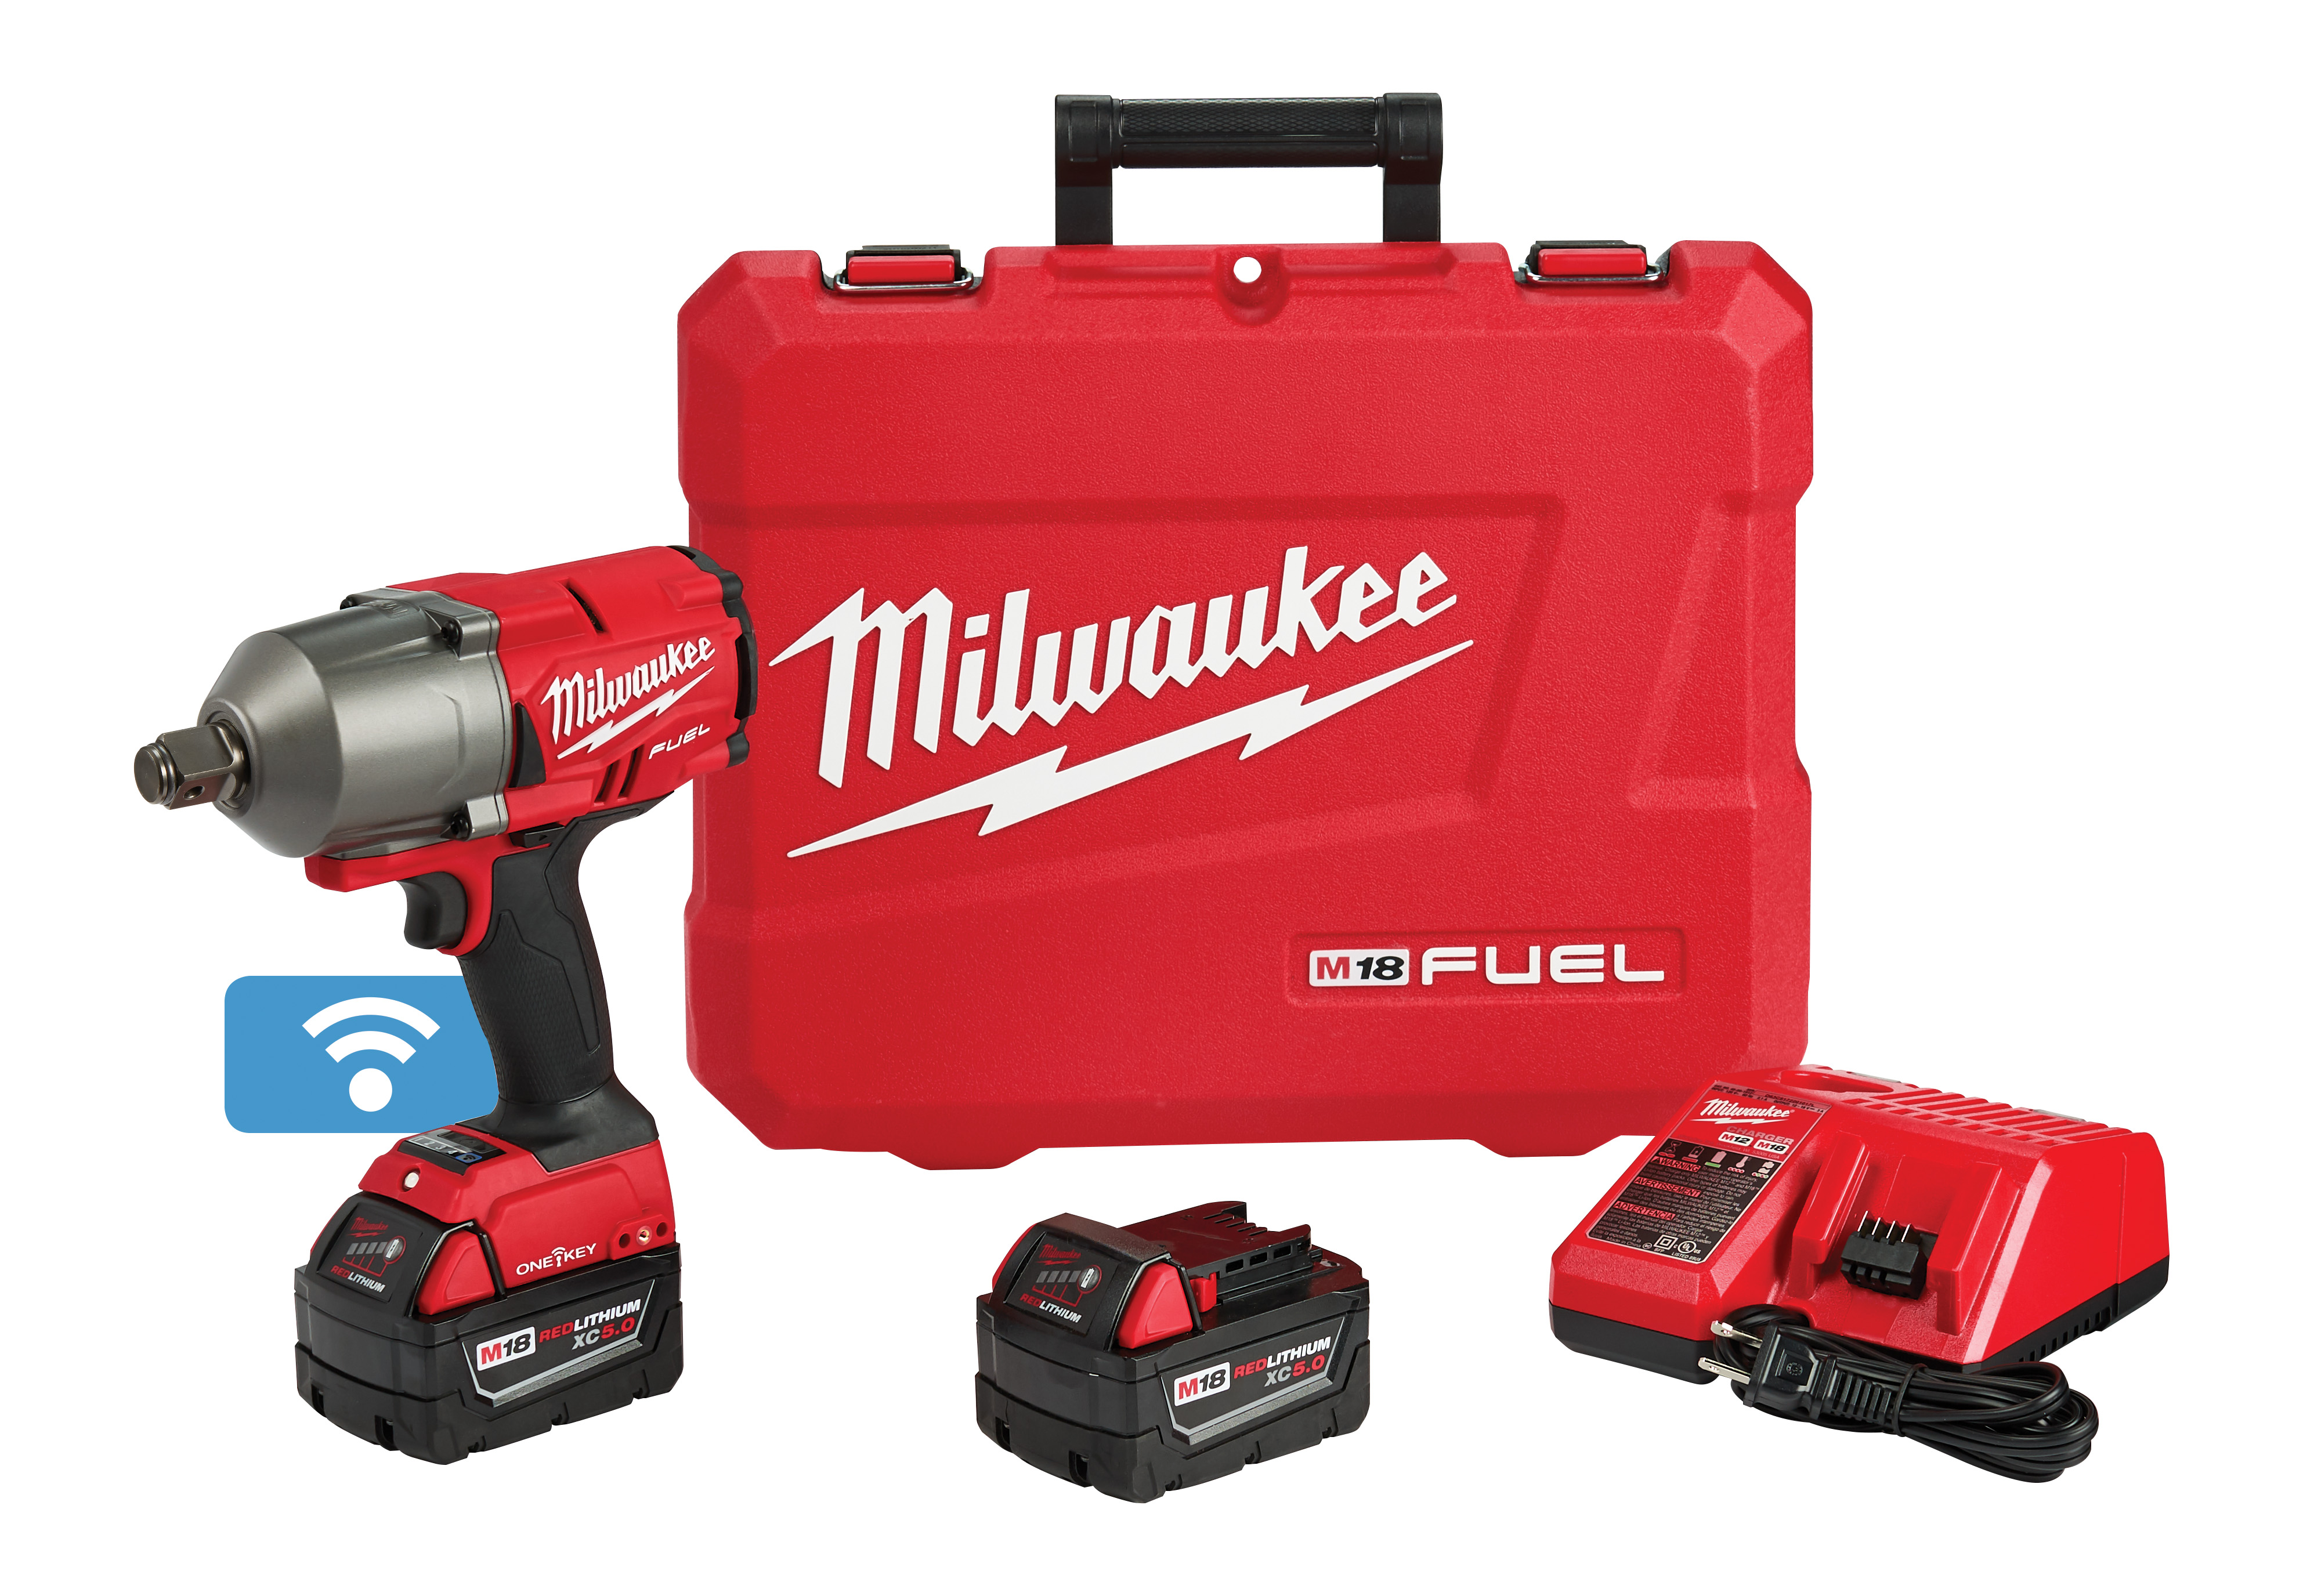 Milwaukee® M18™ FUEL™ ONE-KEY® 2864-22 Cordless High Torque Impact Wrench, 3/4 in 4-Mode Straight Drive, 2100 bpm, 1200/1500 ft-lb Torque, 18 VDC, 8.59 in OAL